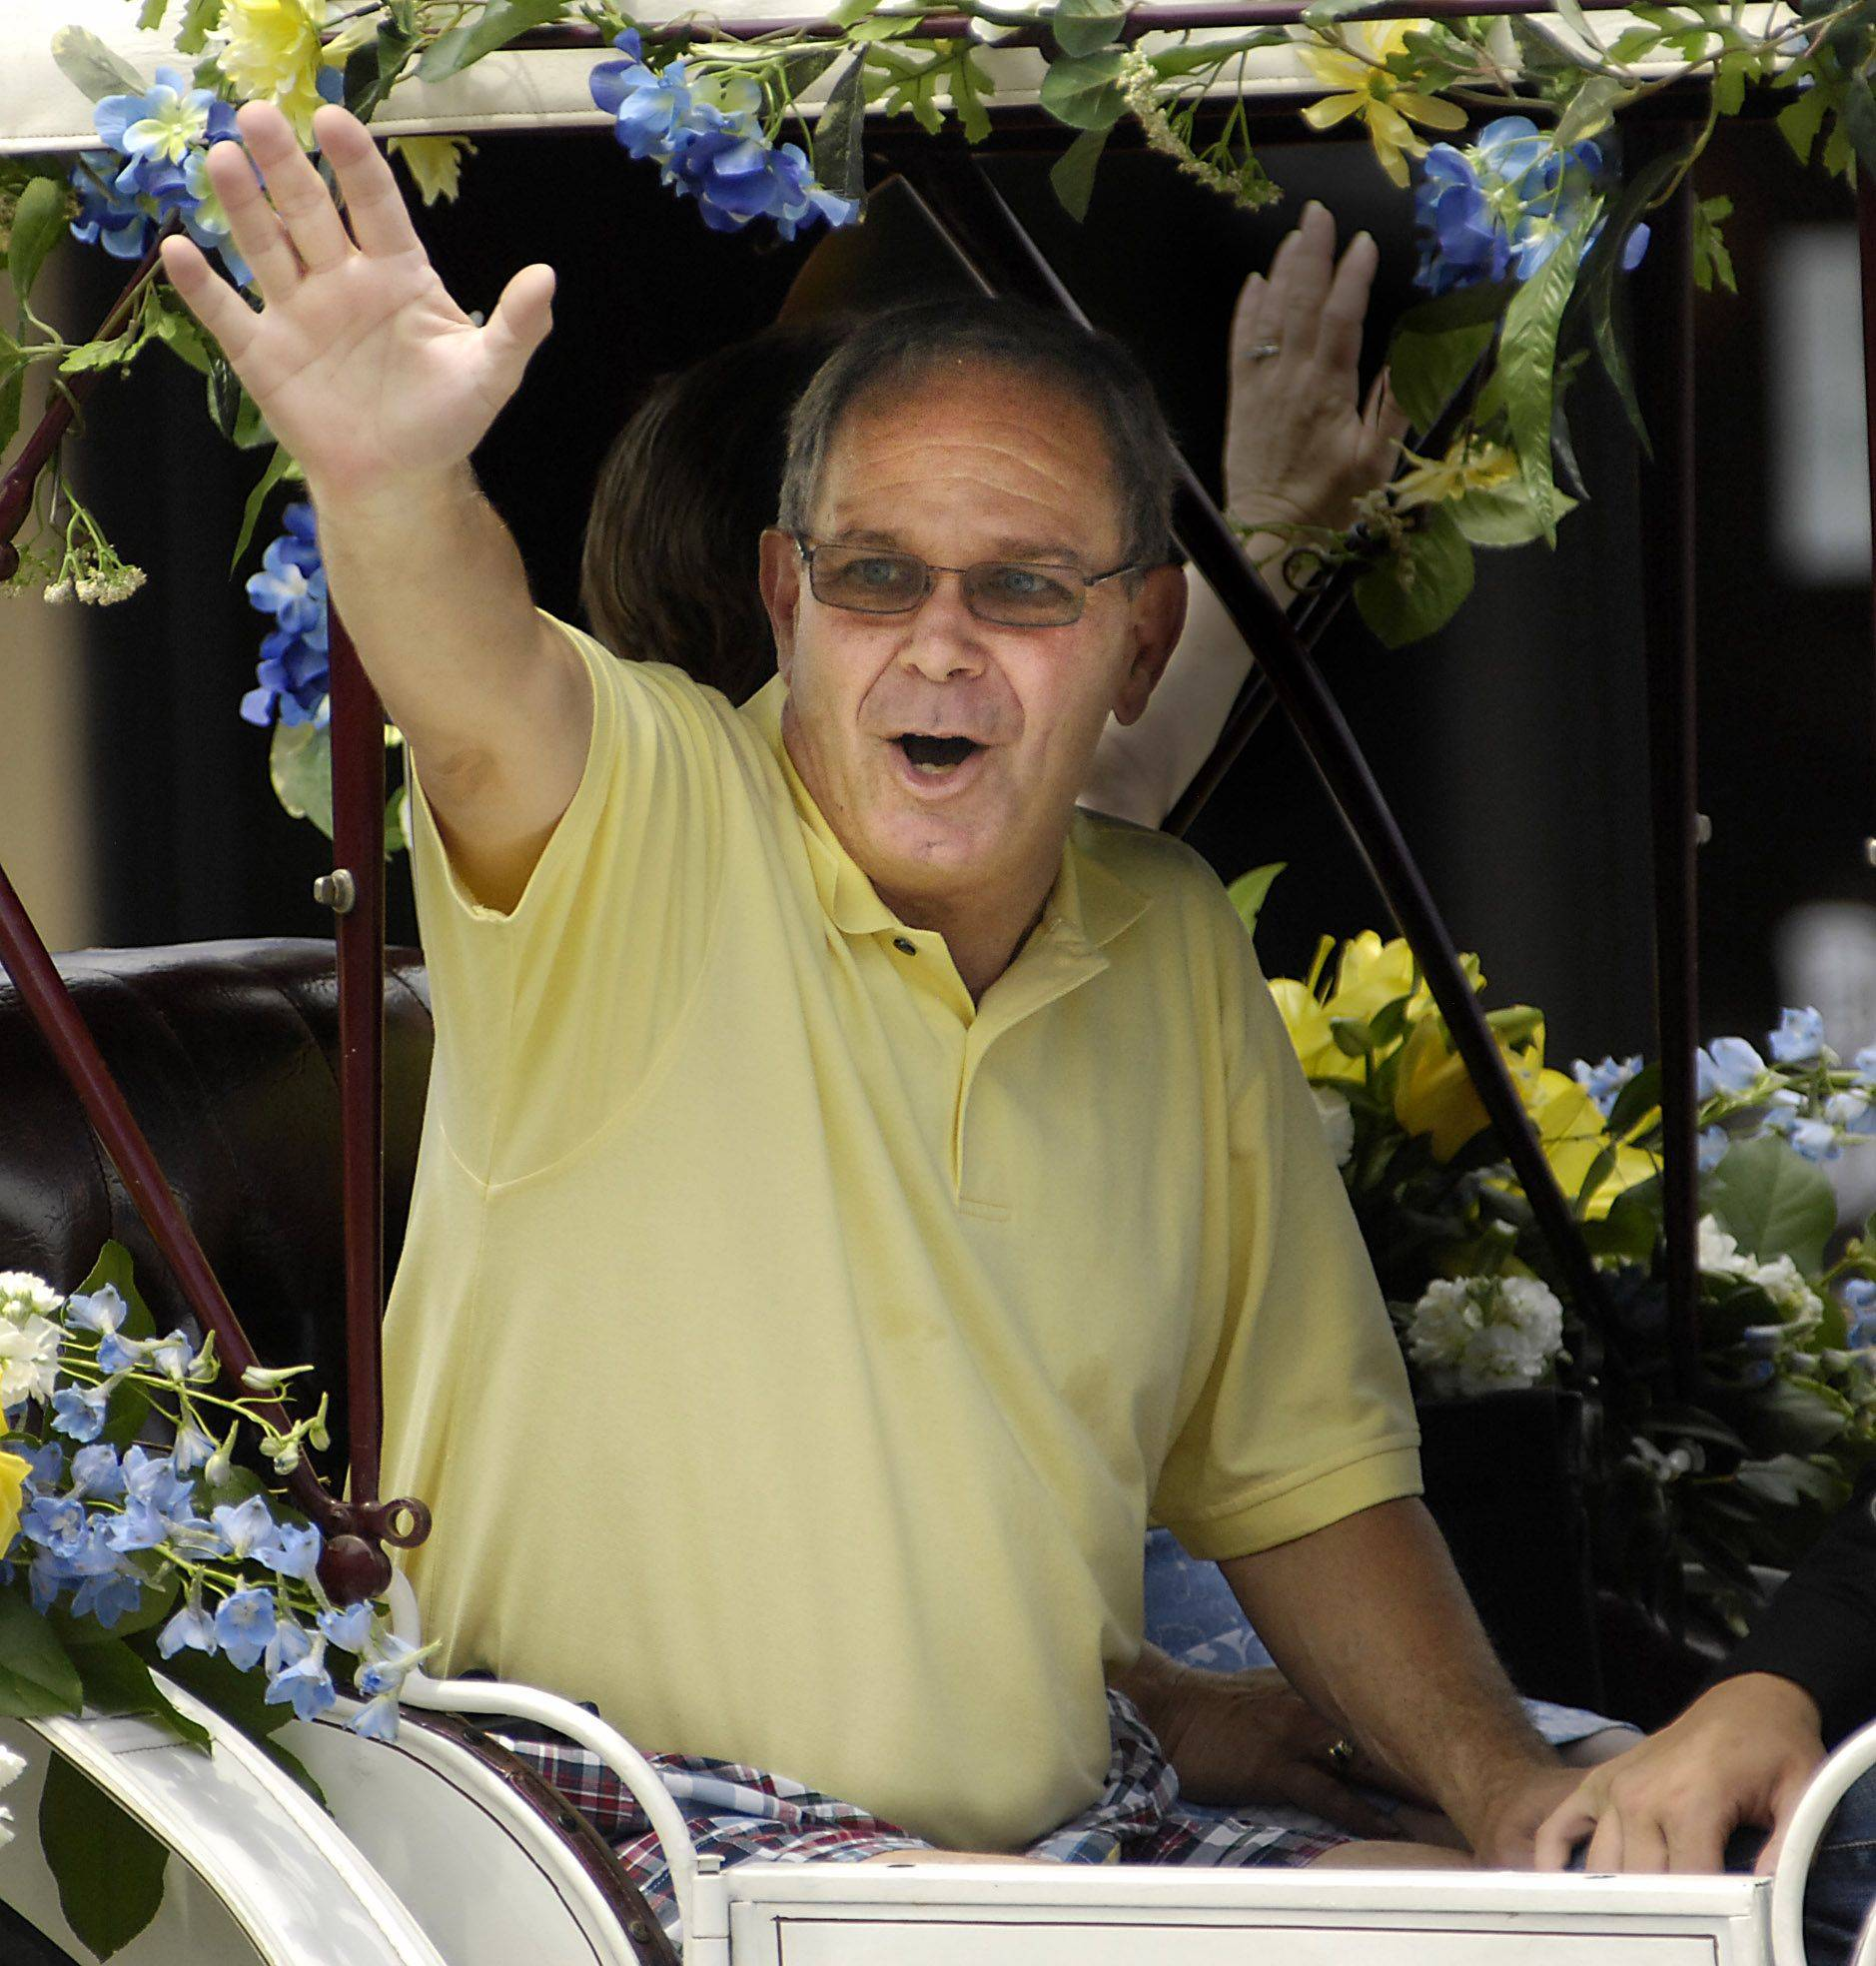 Chuck Lencioni was grand marshal during the 2010 Swedish Days Parade in downtown Geneva.